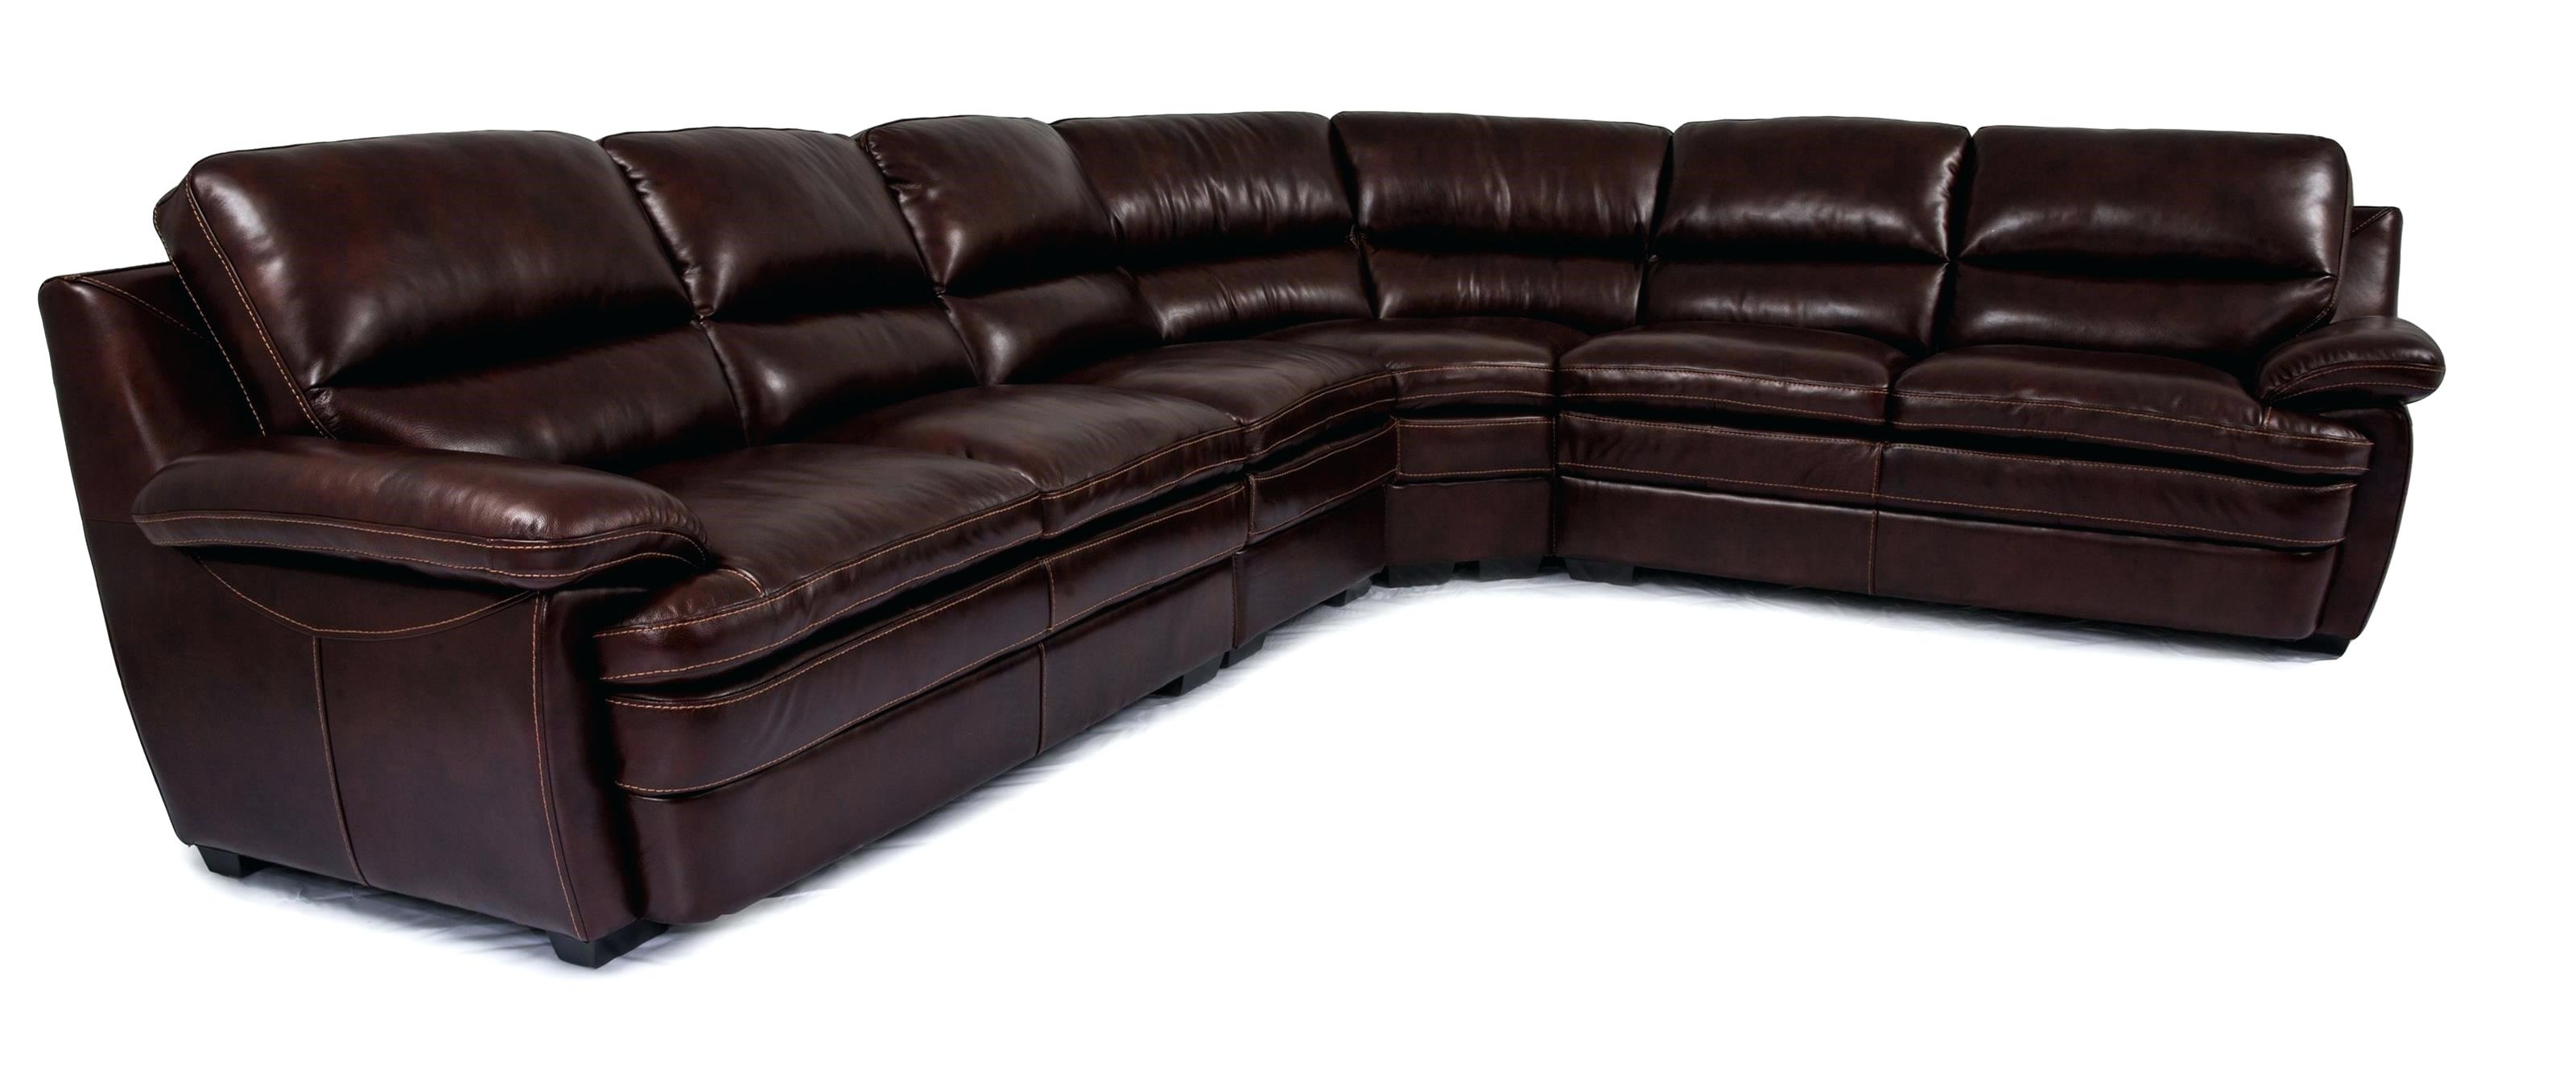 4 Piece Sectional Sofa Franklin 4 Pc Sofa Sectional – Omahaexchange.co intended for Alder 4 Piece Sectionals (Image 2 of 30)